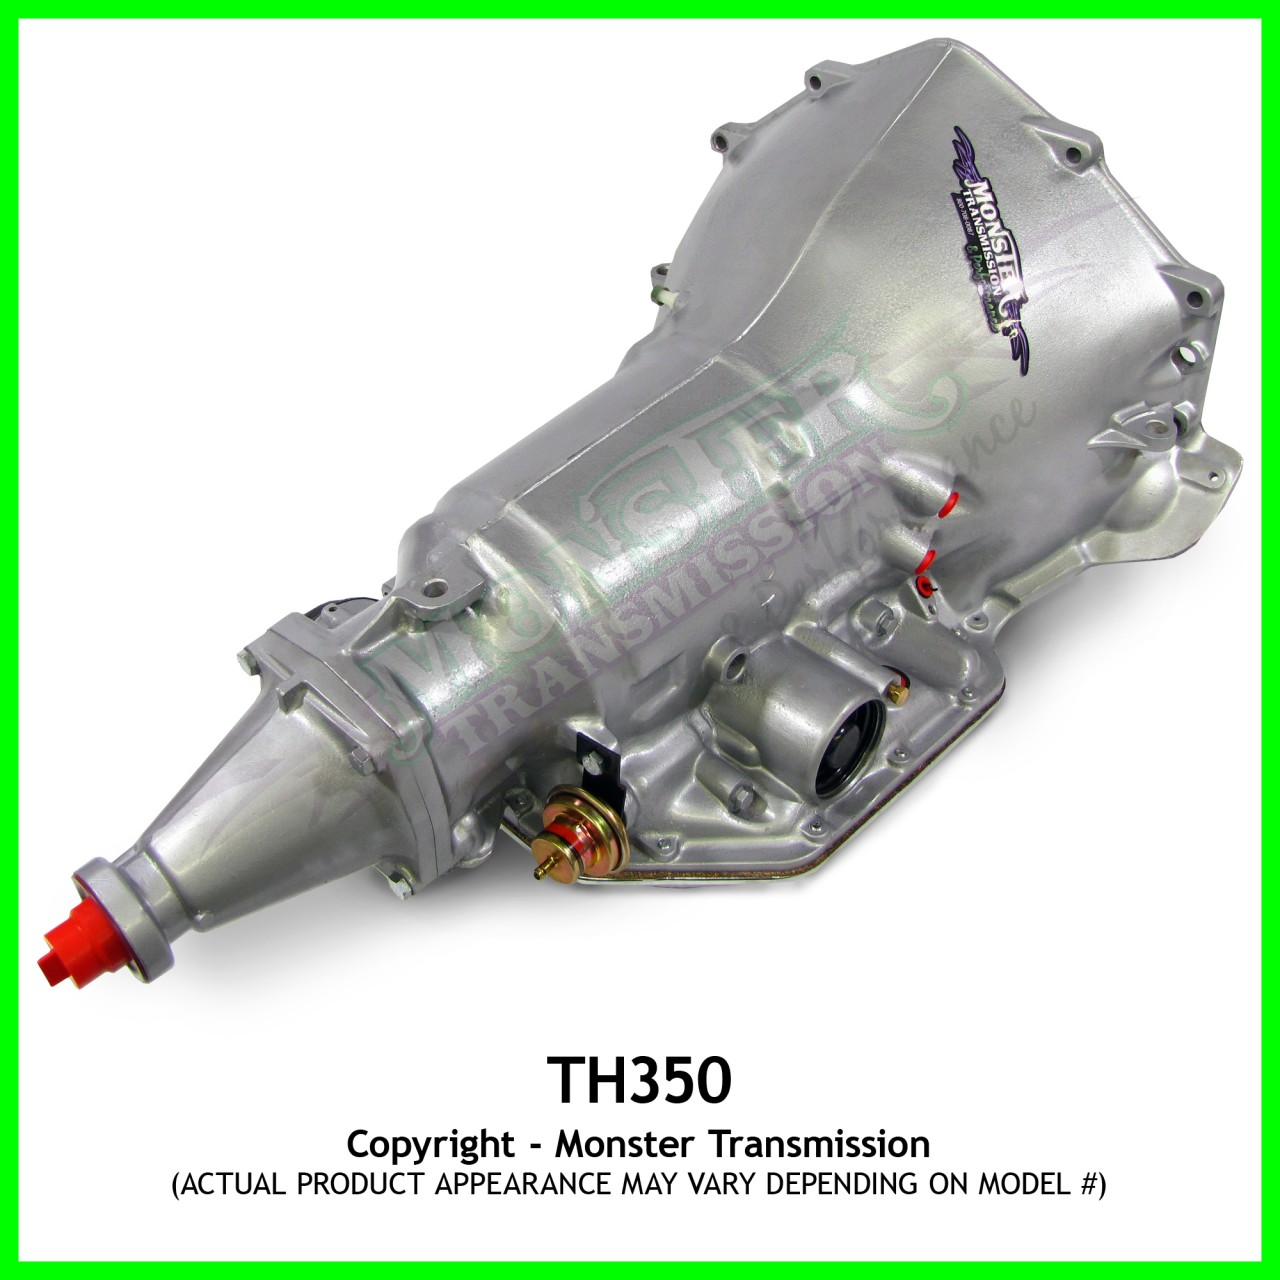 hight resolution of chevy turbo 350 transmission diagram simple wiring schema chevy powerglide diagram chevy turbo 400 diagram